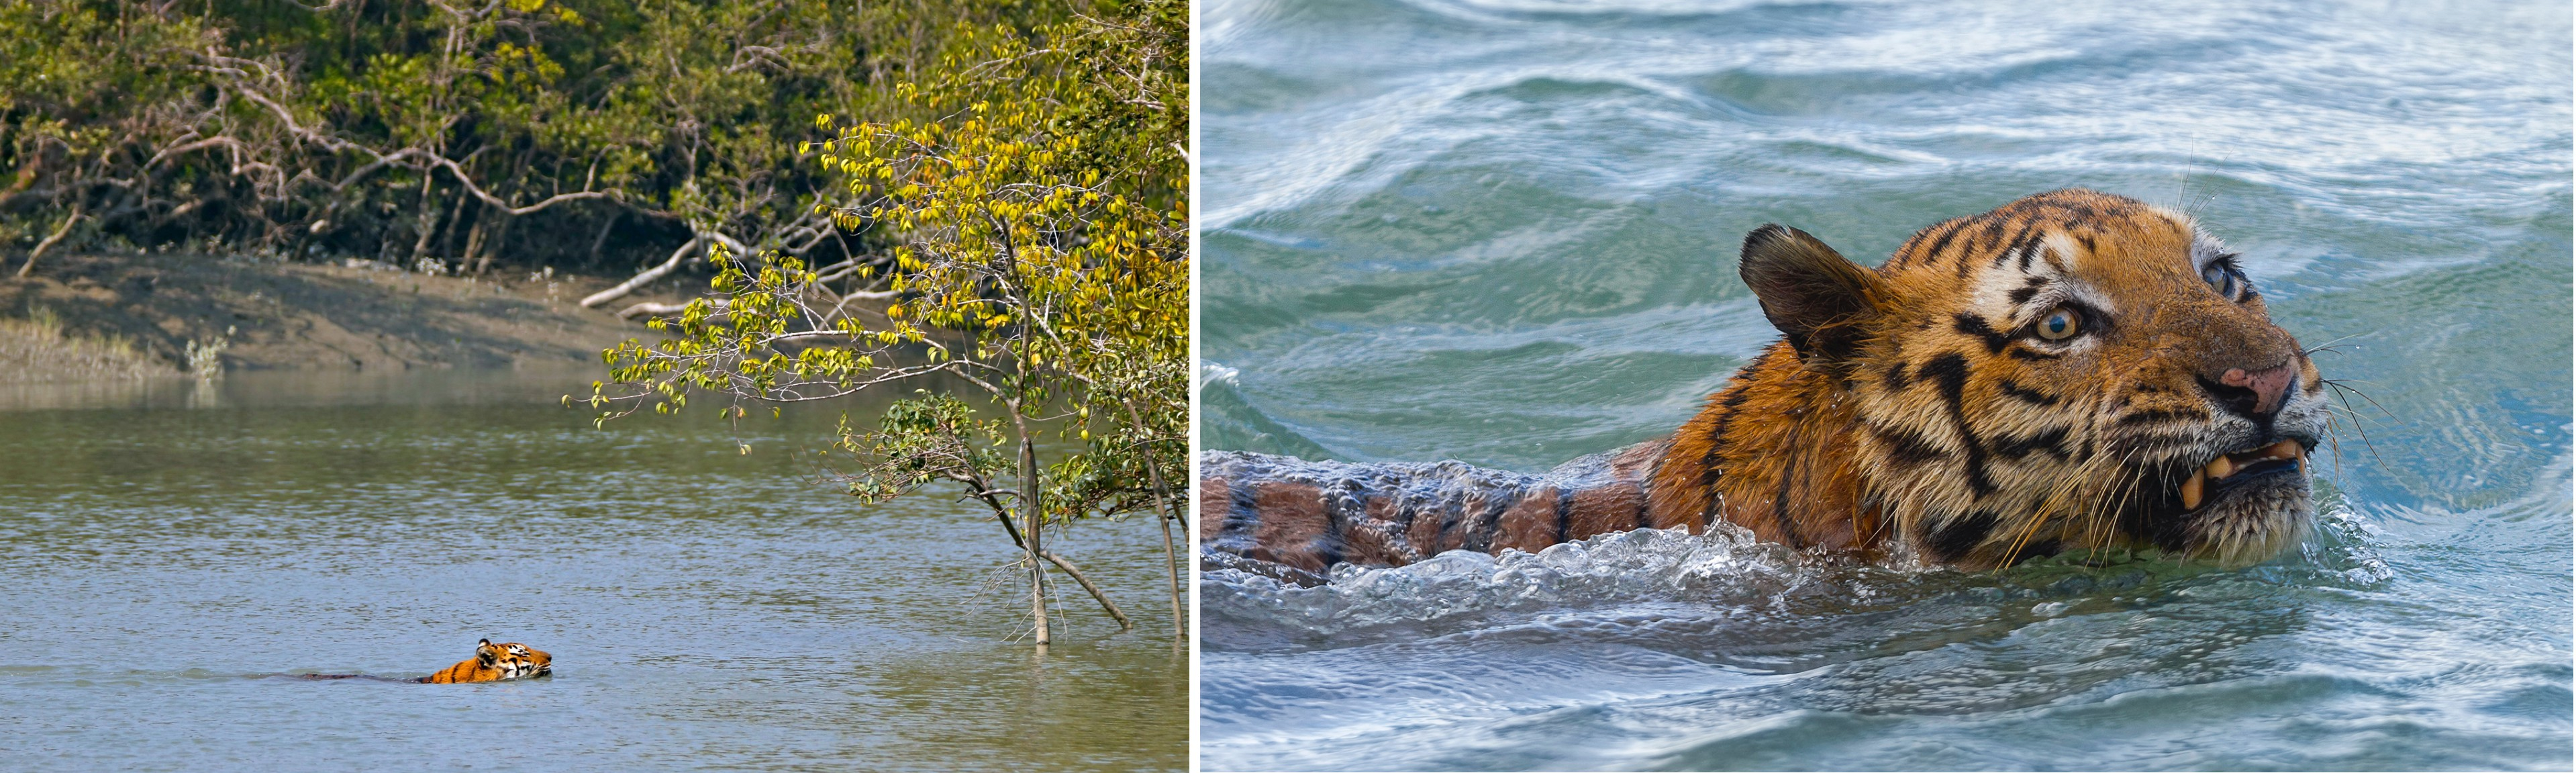 The Sundarbans tiger is a terrestrial-cum-aquatic mammal. Unlike the mainland tiger, the Sundarbans tiger has to regularly swim along rivers to hunt and to get from one island to another. Chances of spotting it are high when it is crossing a creek. Photo: Upamanyu Roy (left), Soumyajit Nandy (right)